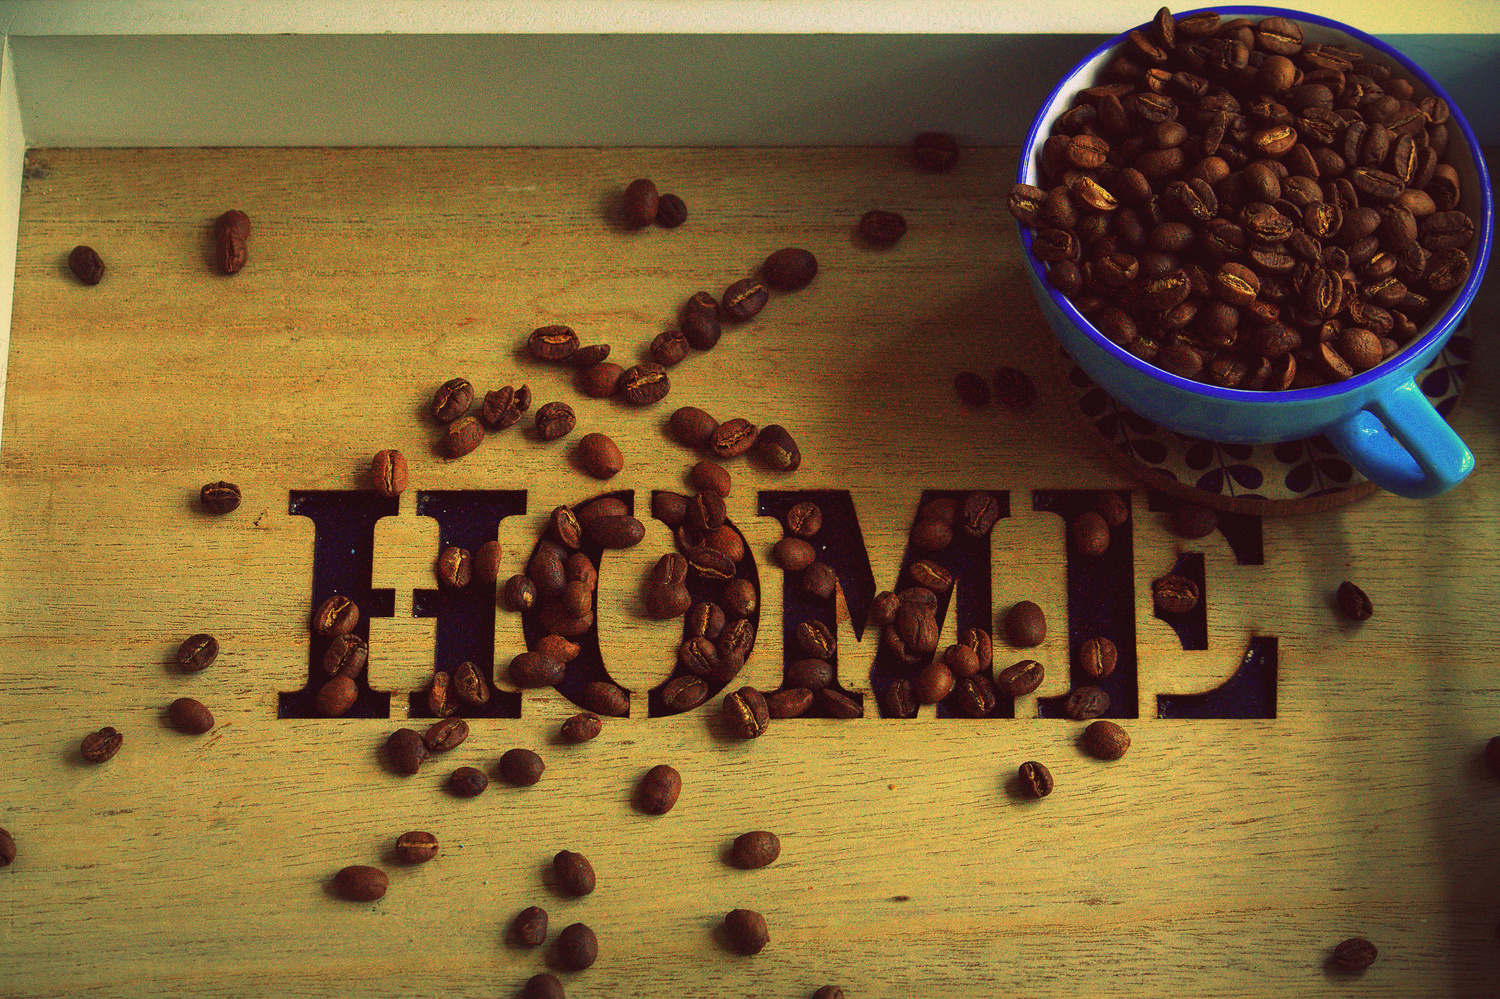 Coffee and Home by Shaun Botha